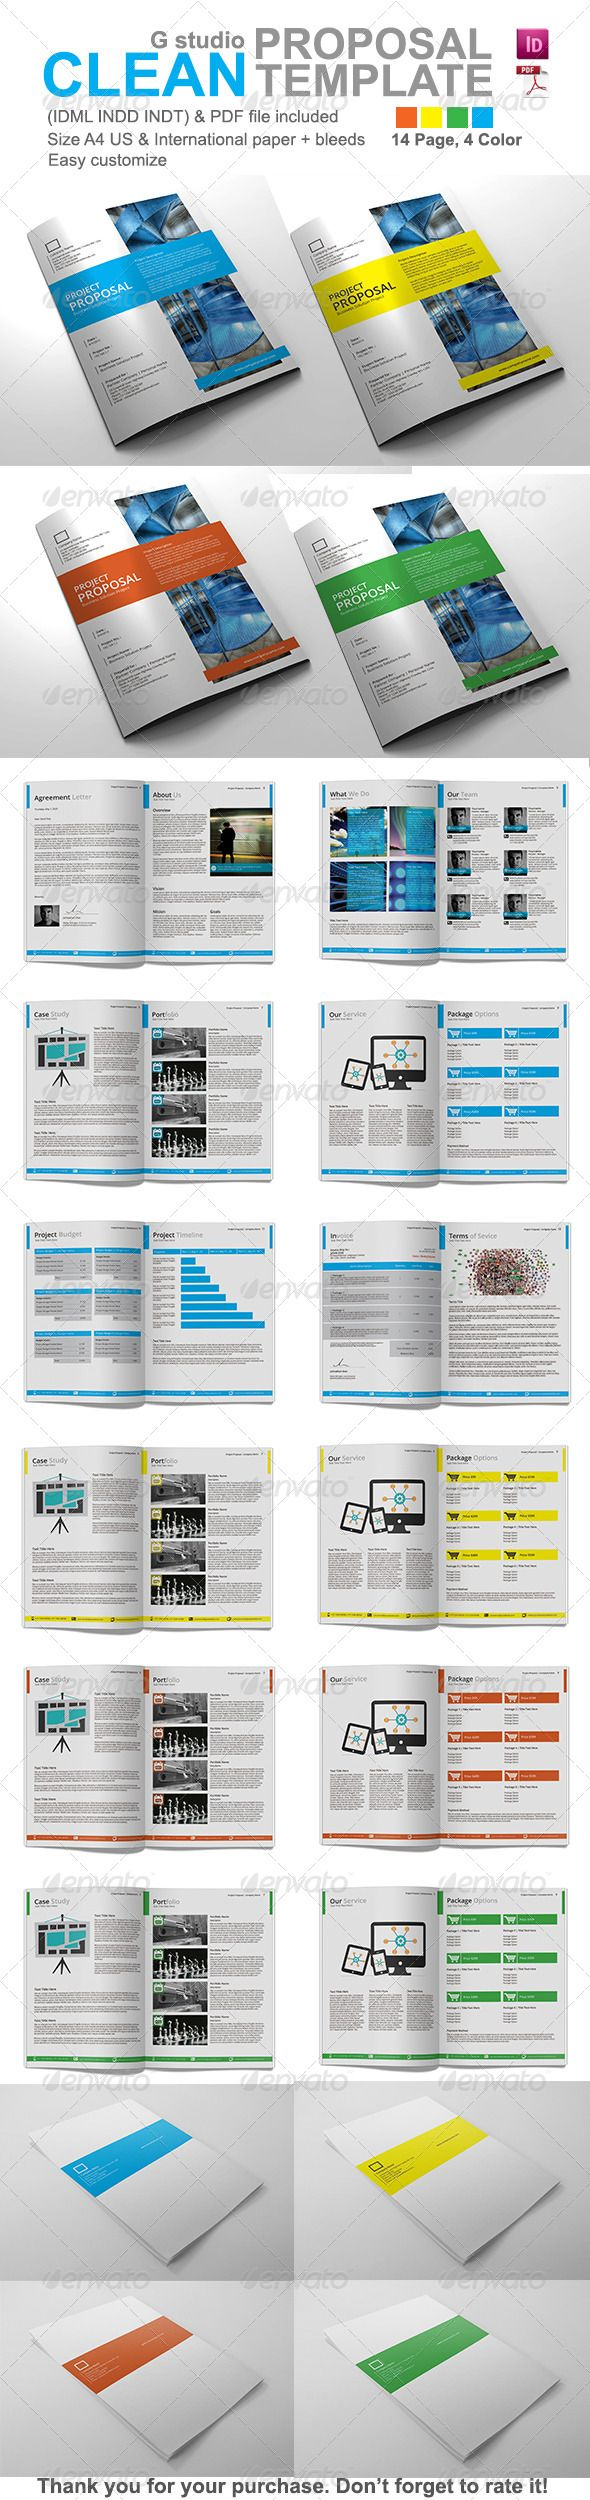 best images about rfp project proposal adobe gstudio clean proposal template